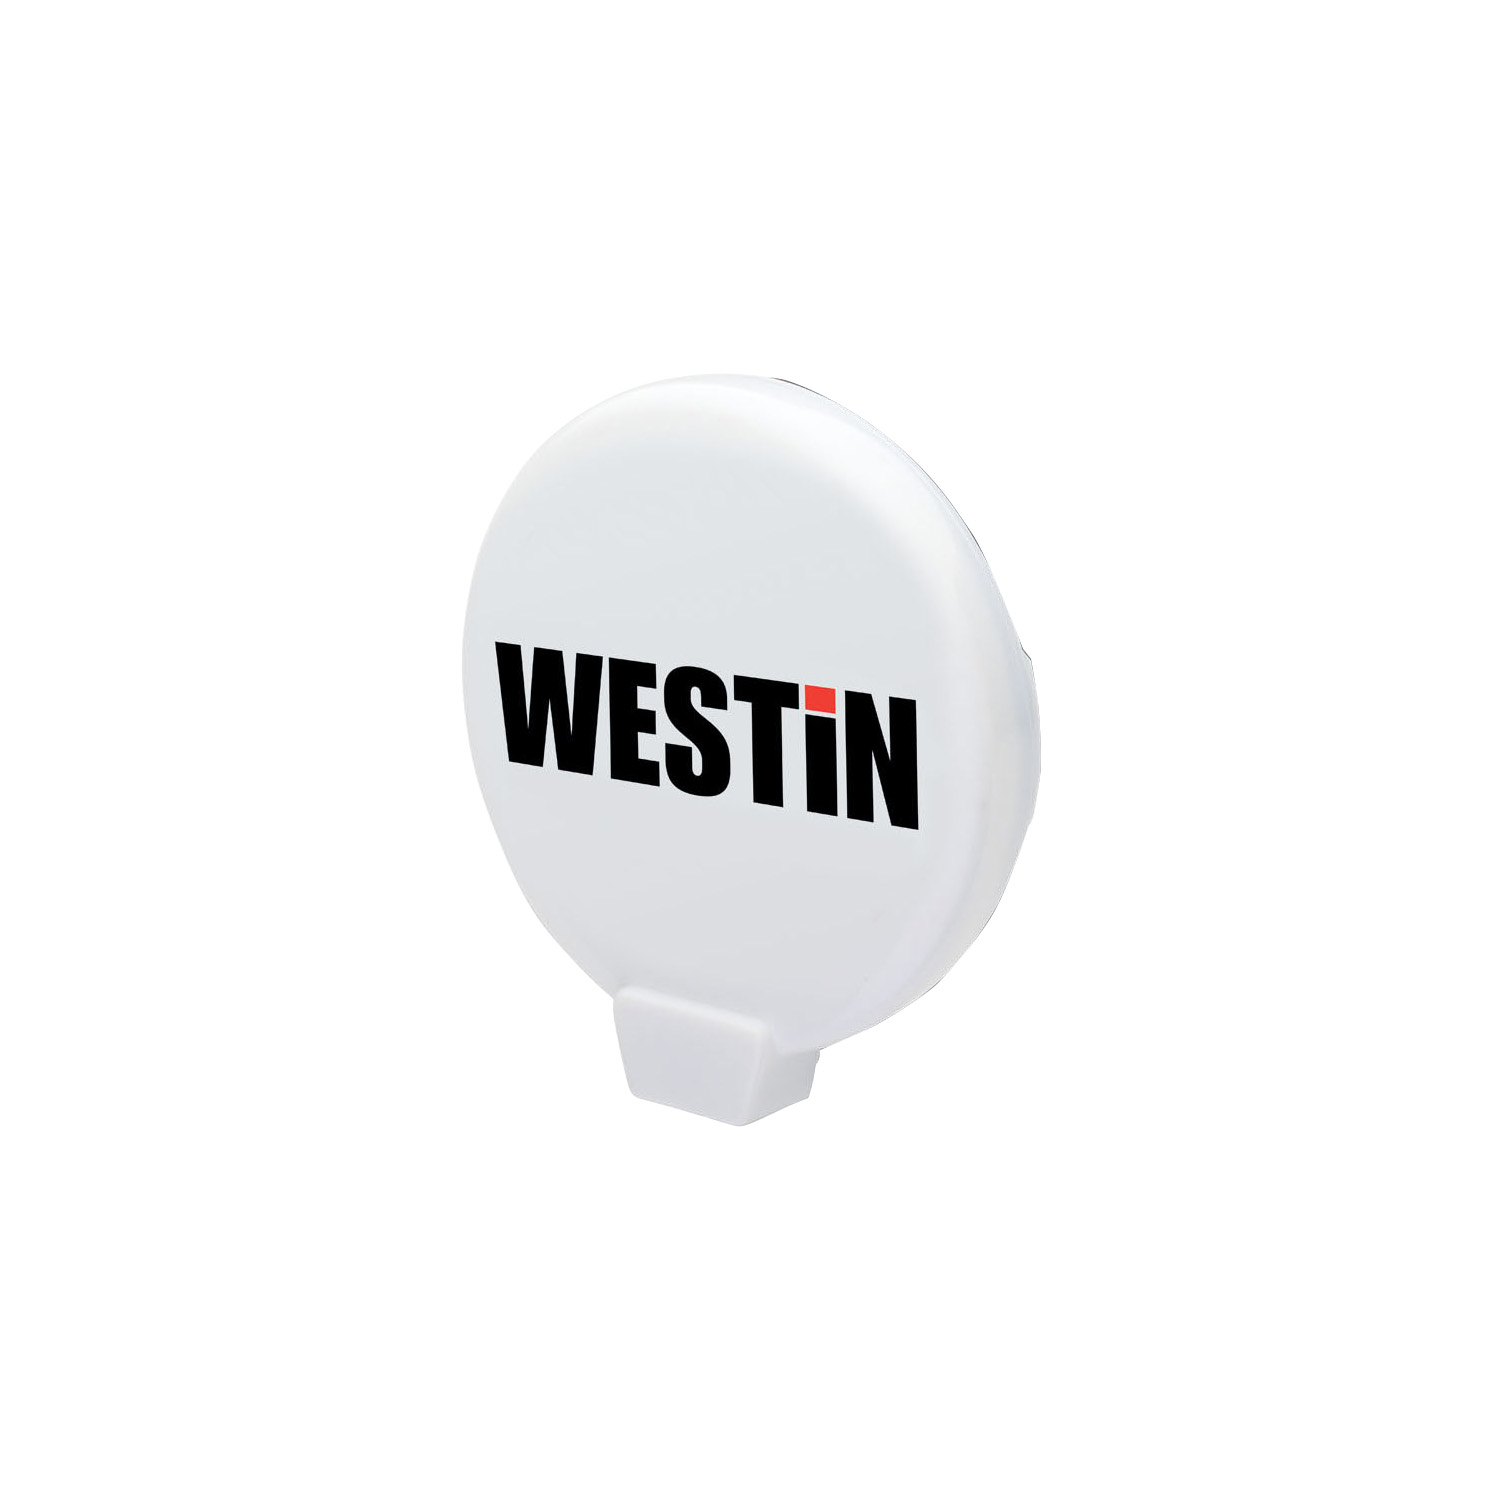 09-0205C Westin Automotive Driving/ Fog Light Cover 5.75 Inch Diameter